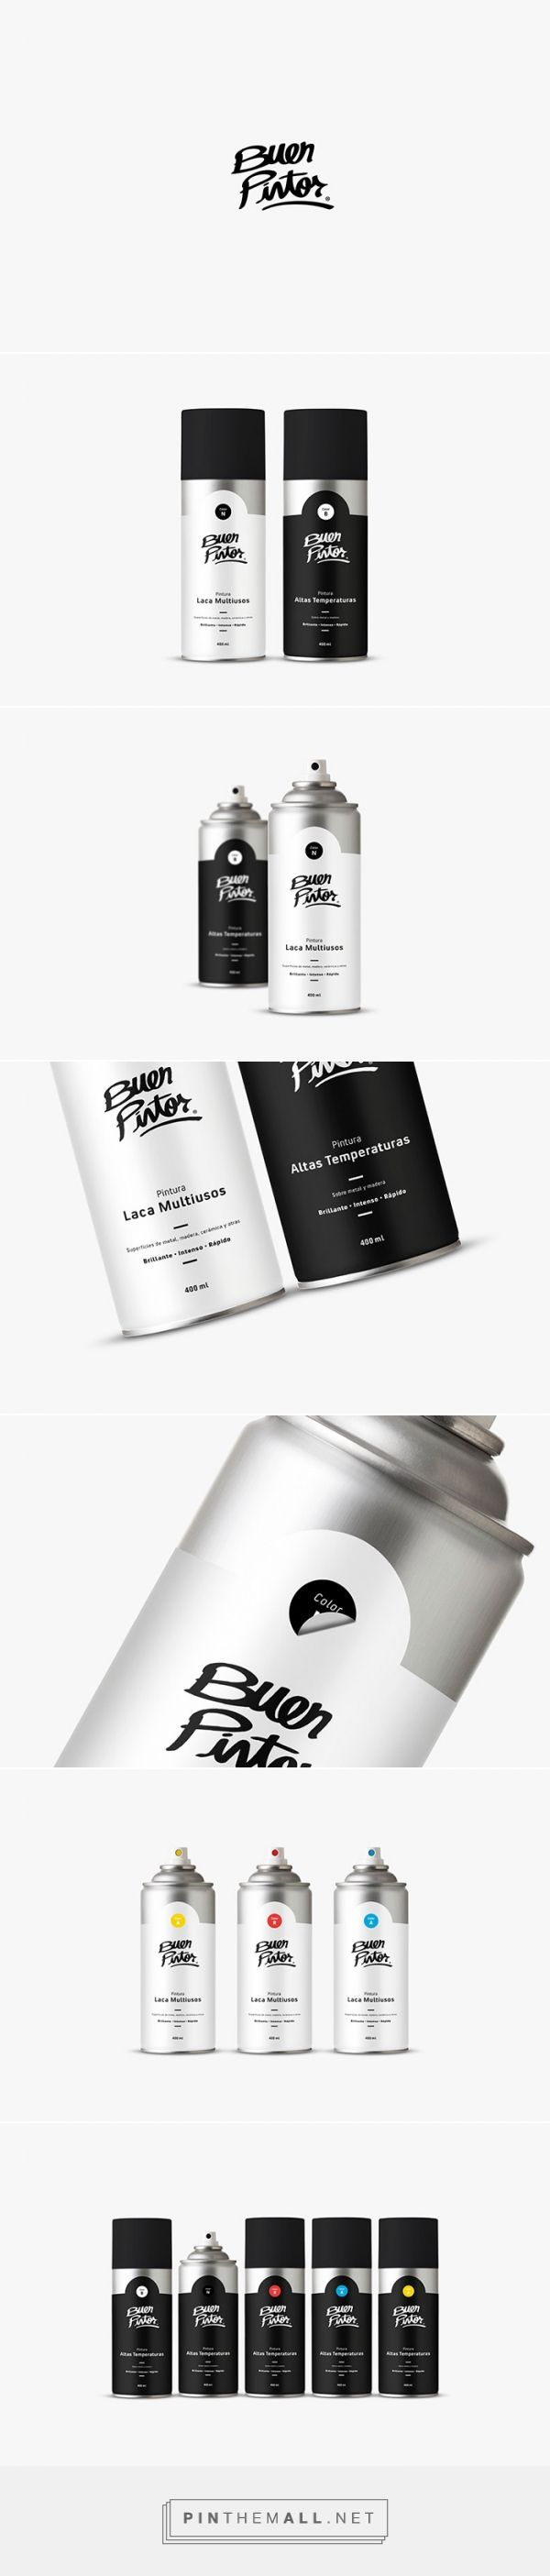 Buen Pintor spray paint by Brian Piraquive. Source: Daily Package Design Inspiration. Pin curated by #SFields99 #packaging #design